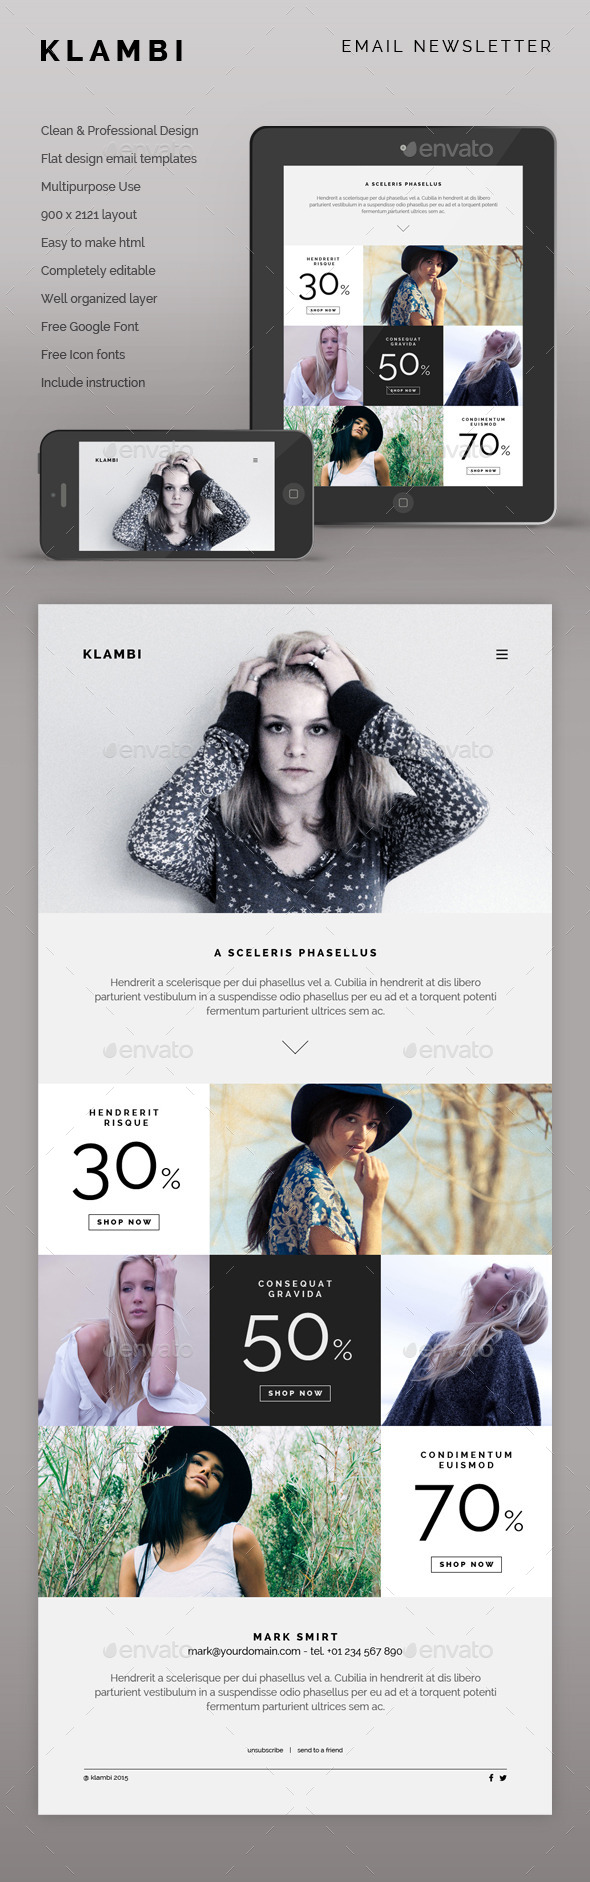 Klambi Email Newsletter II - E-newsletters Web Elements